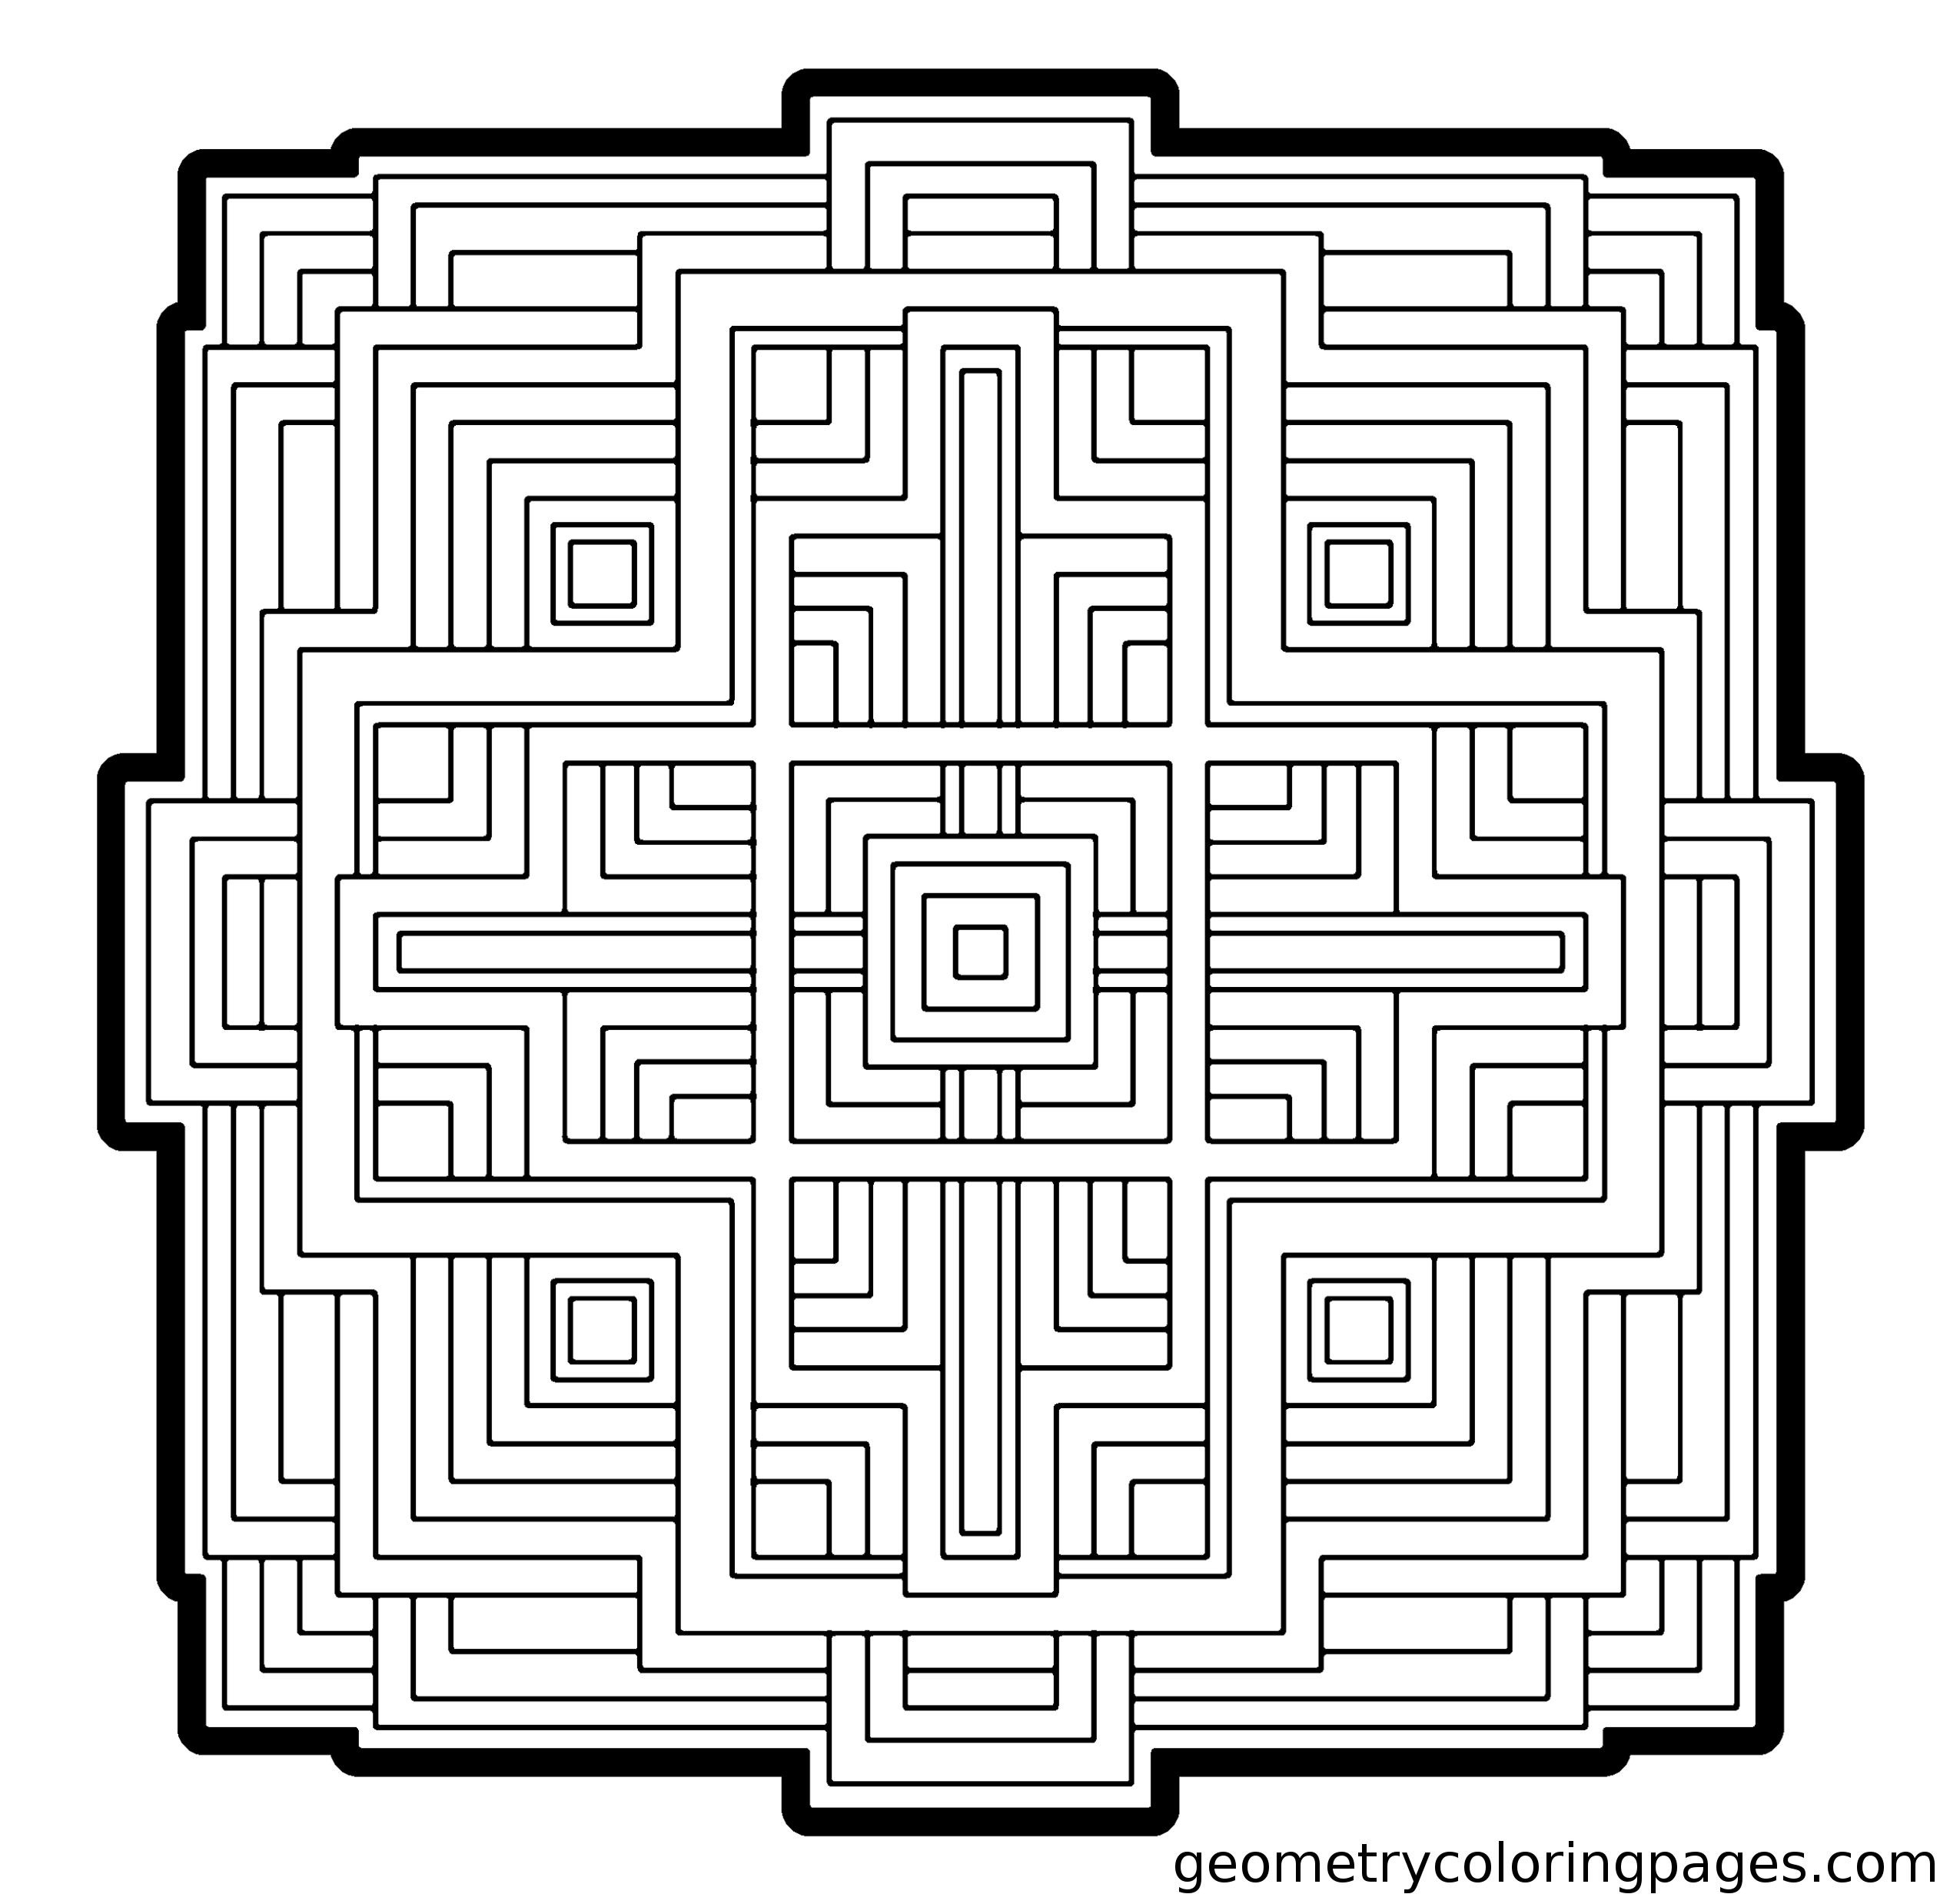 Pin By Catherine Trotin On Coloring Pages Geometric Coloring Pages Coloring Pages Blank Coloring Pages